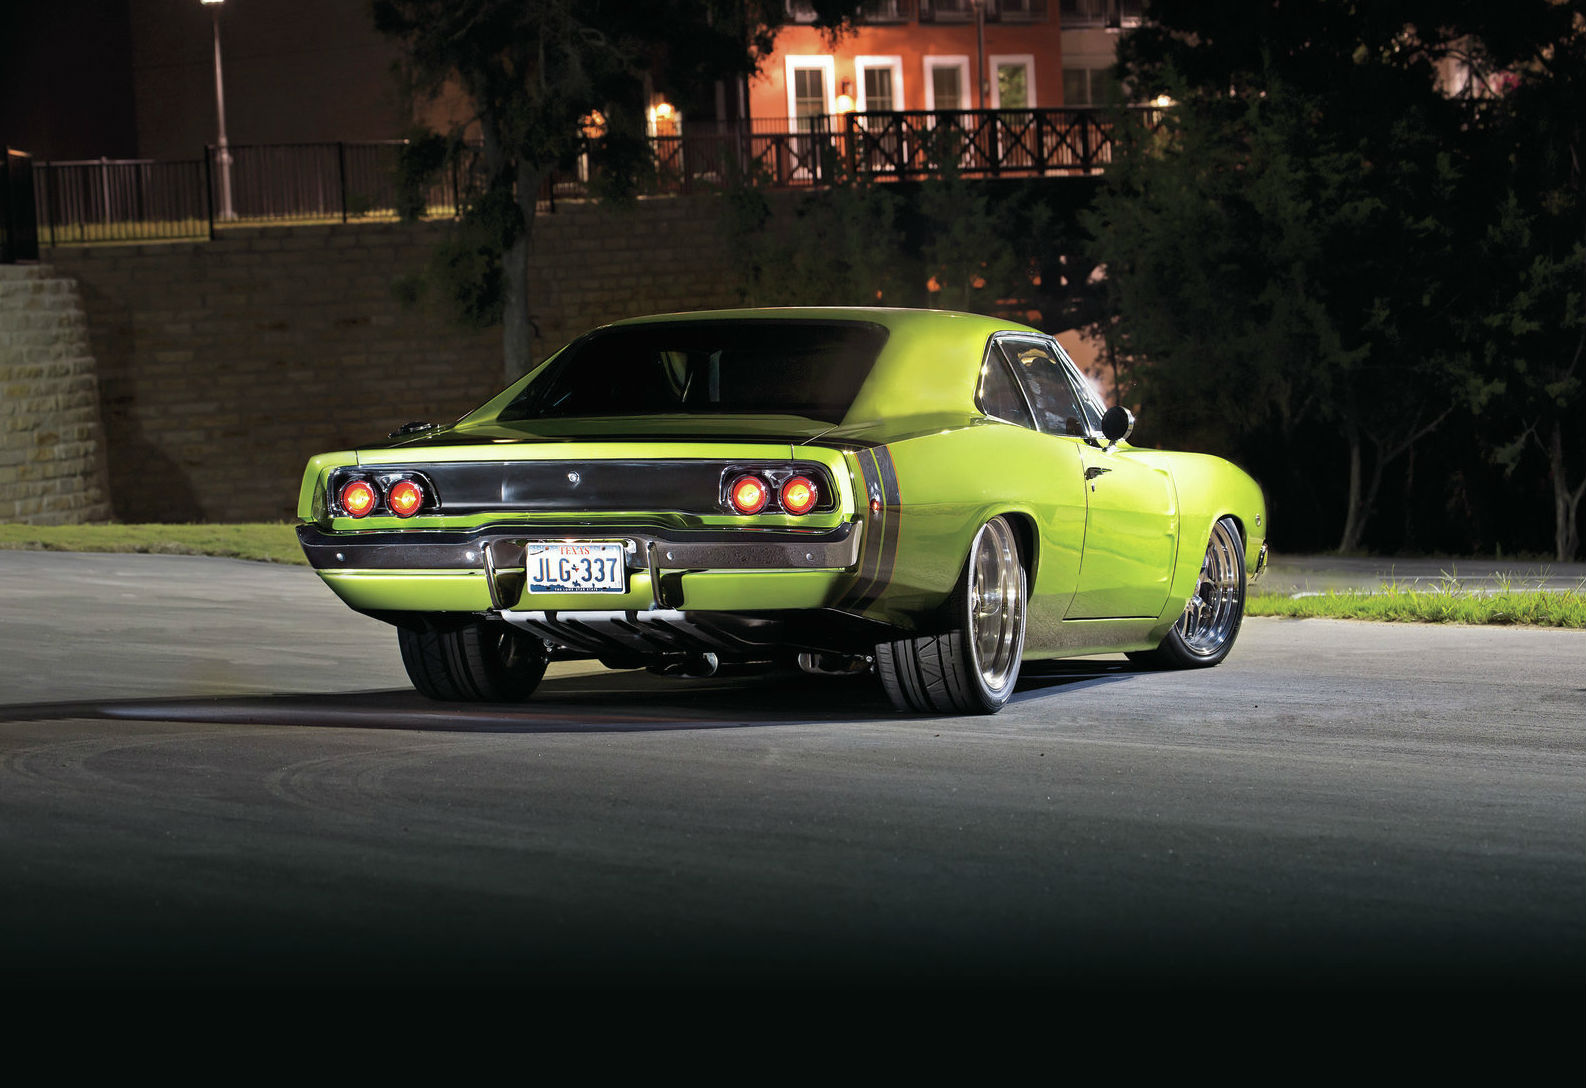 Dodge Charger Rear View Muscle Cars Zone